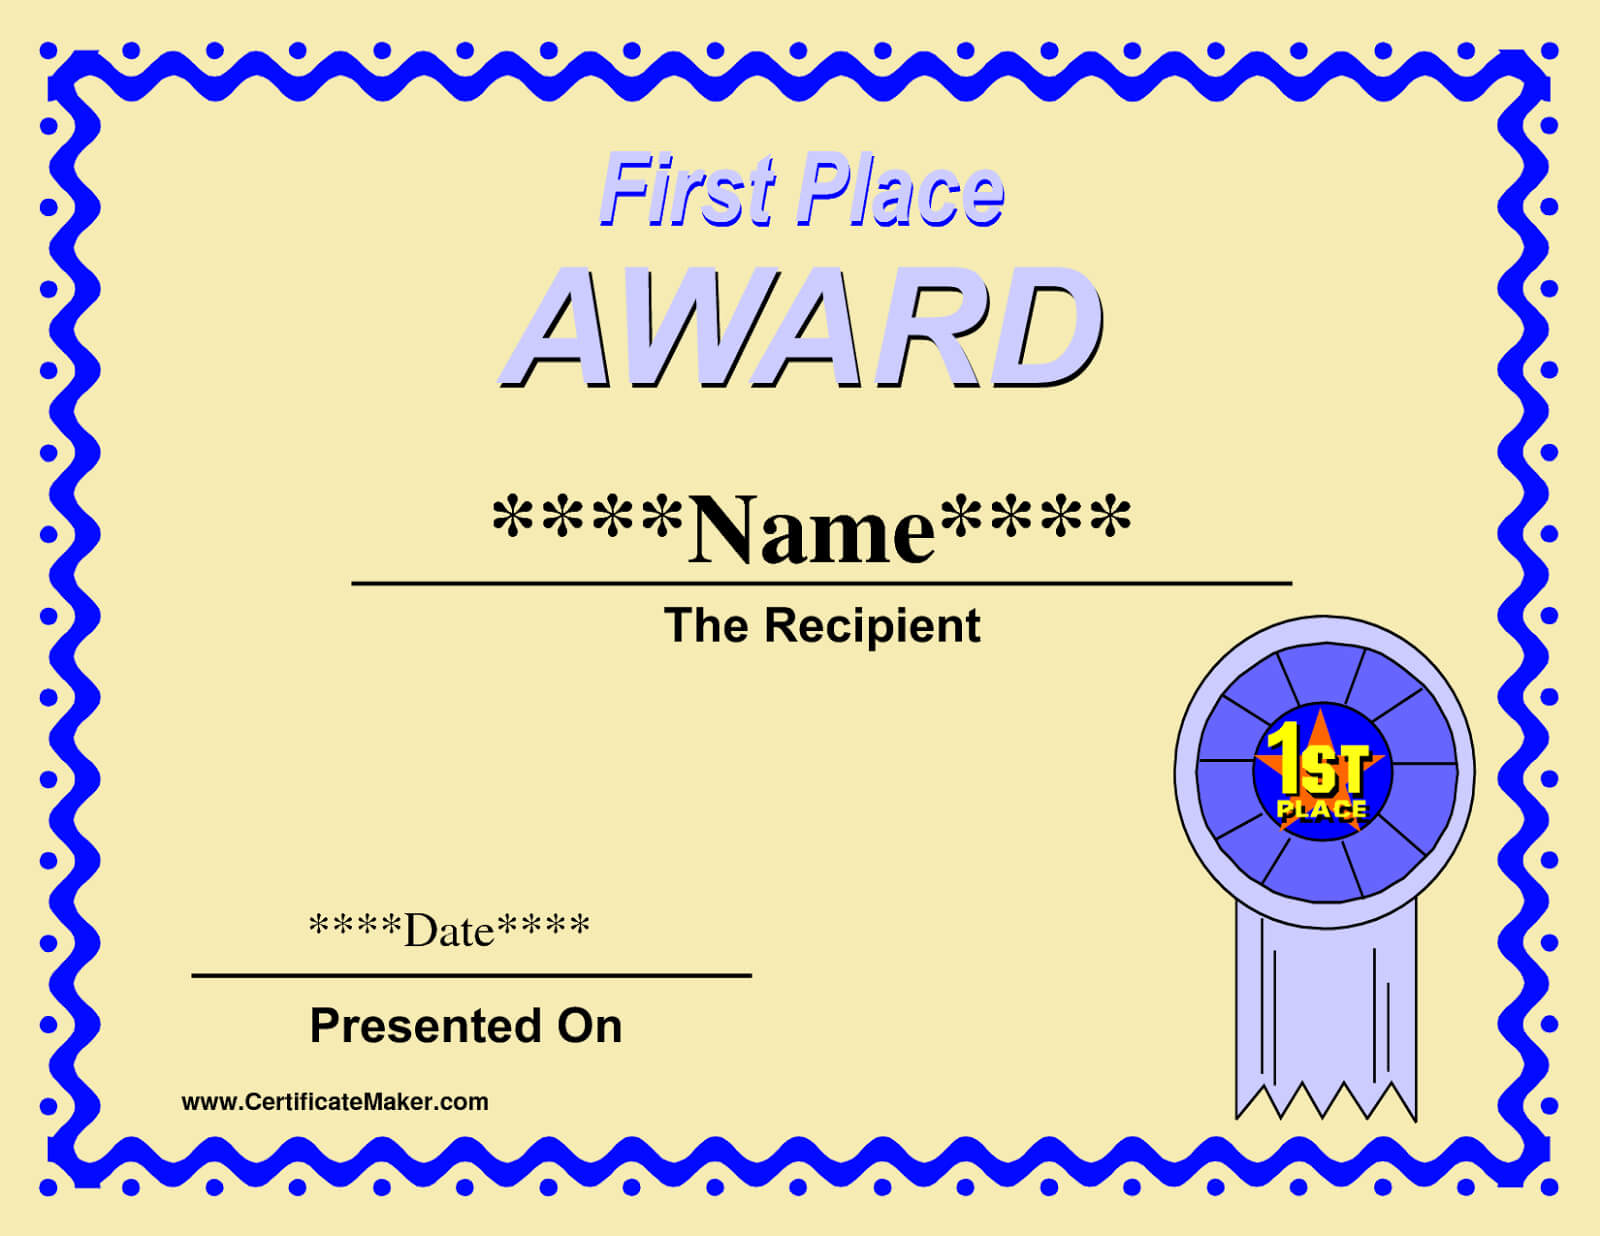 Printable Winner Certificate Templates | Certificate throughout First Place Award Certificate Template